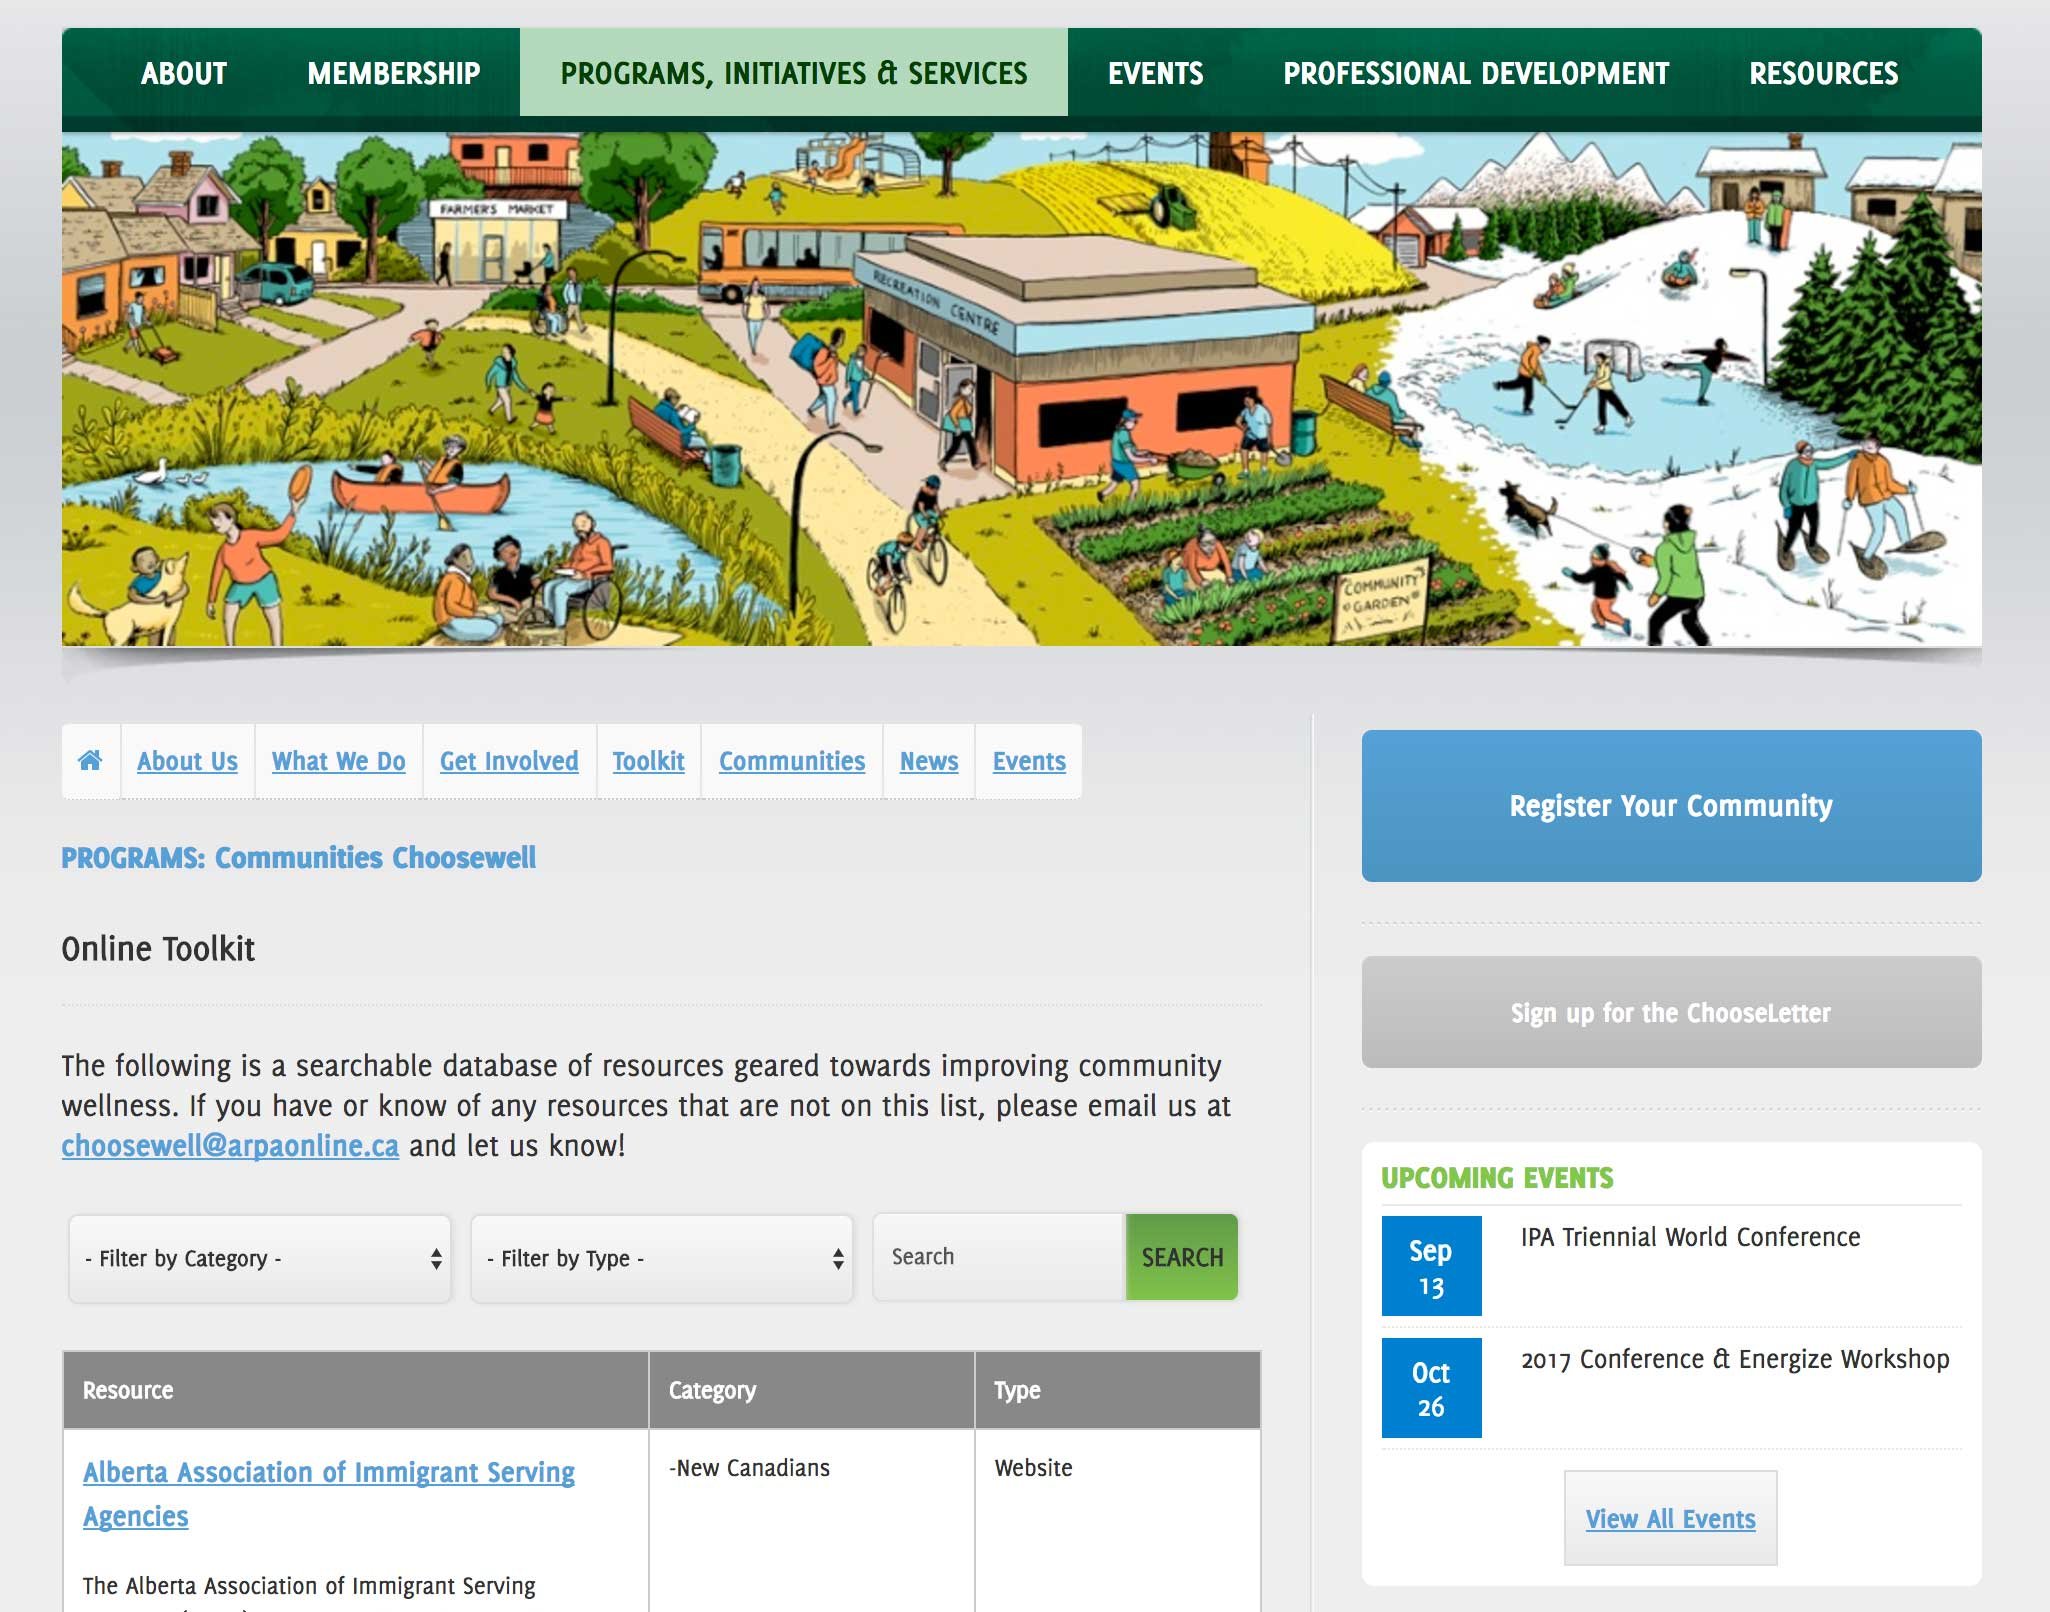 Screenshot of ARPA website Programs and Initiatives page